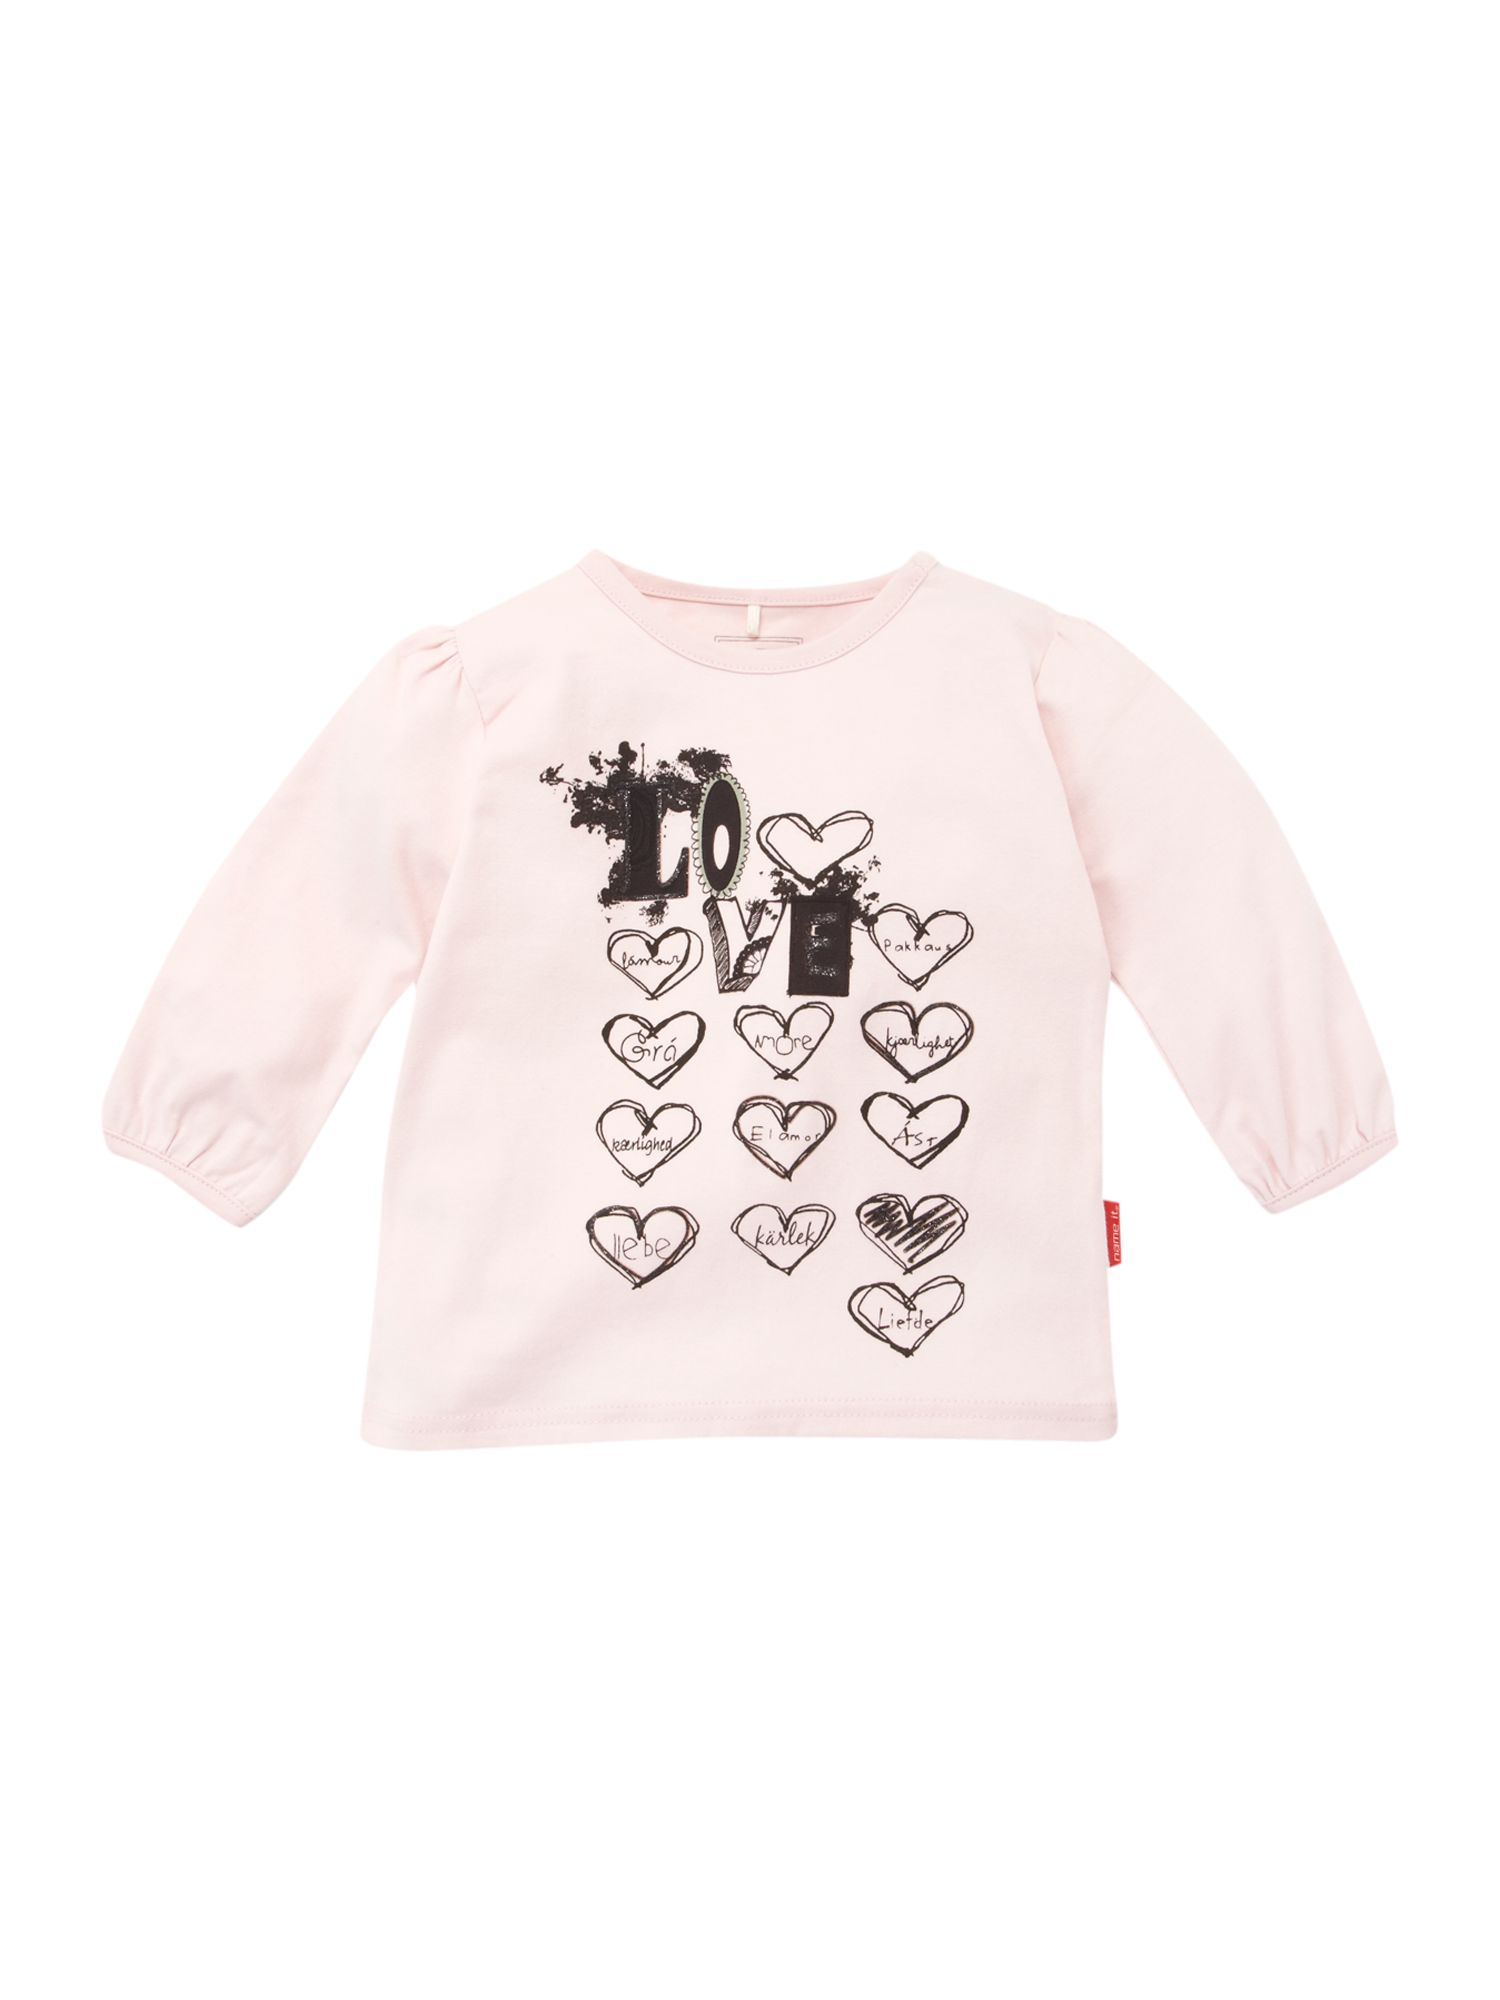 Name it long sleeved love printed t shirt light review for Name printed t shirts online